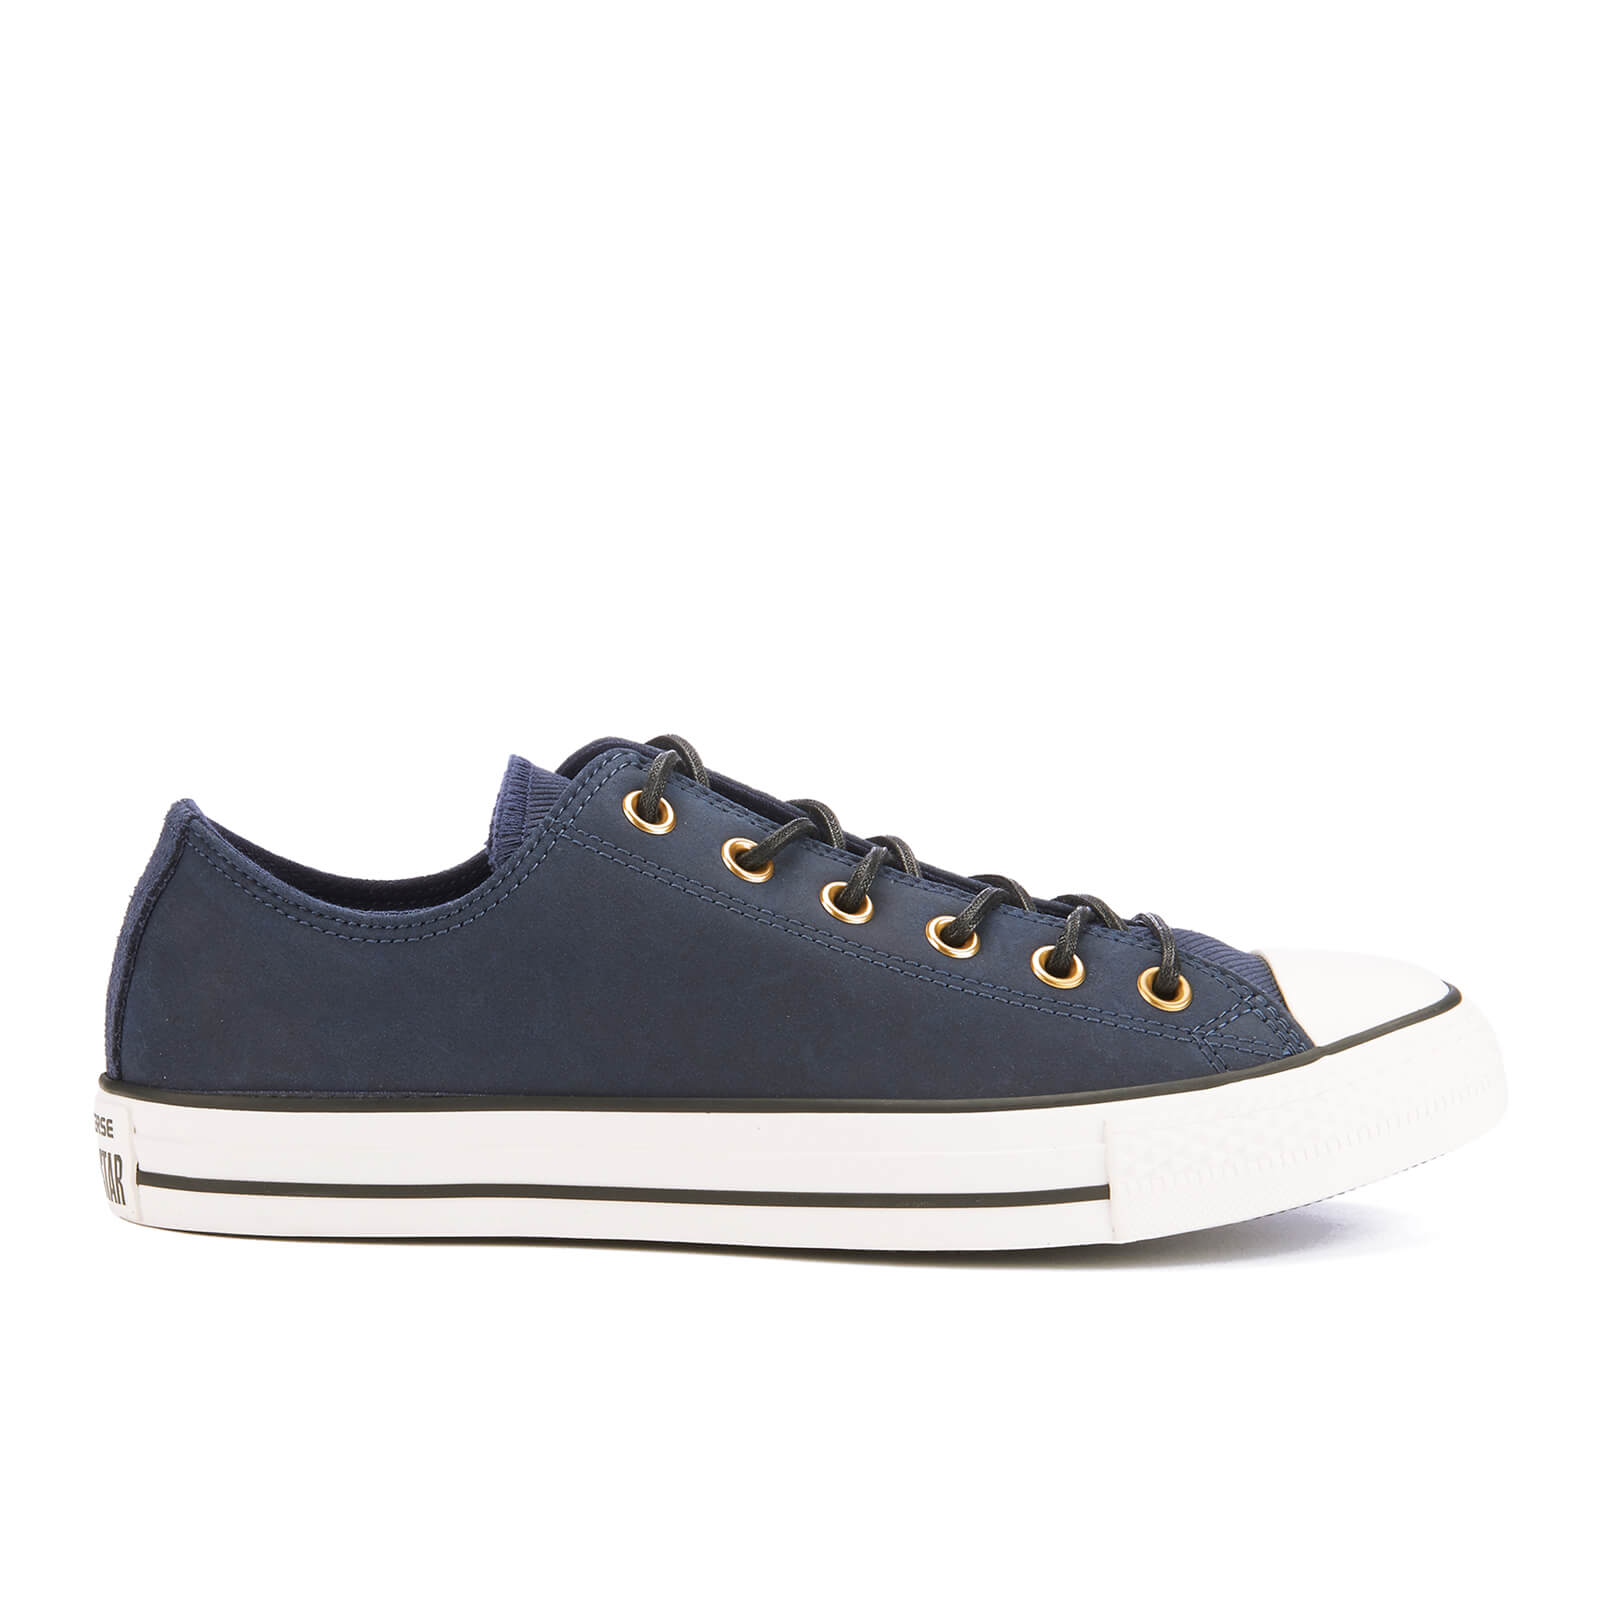 size 40 factory outlets Good Prices Converse Men's Chuck Taylor All Star Leather/Corduroy Ox Trainers -  Obsidian/Egret/Black